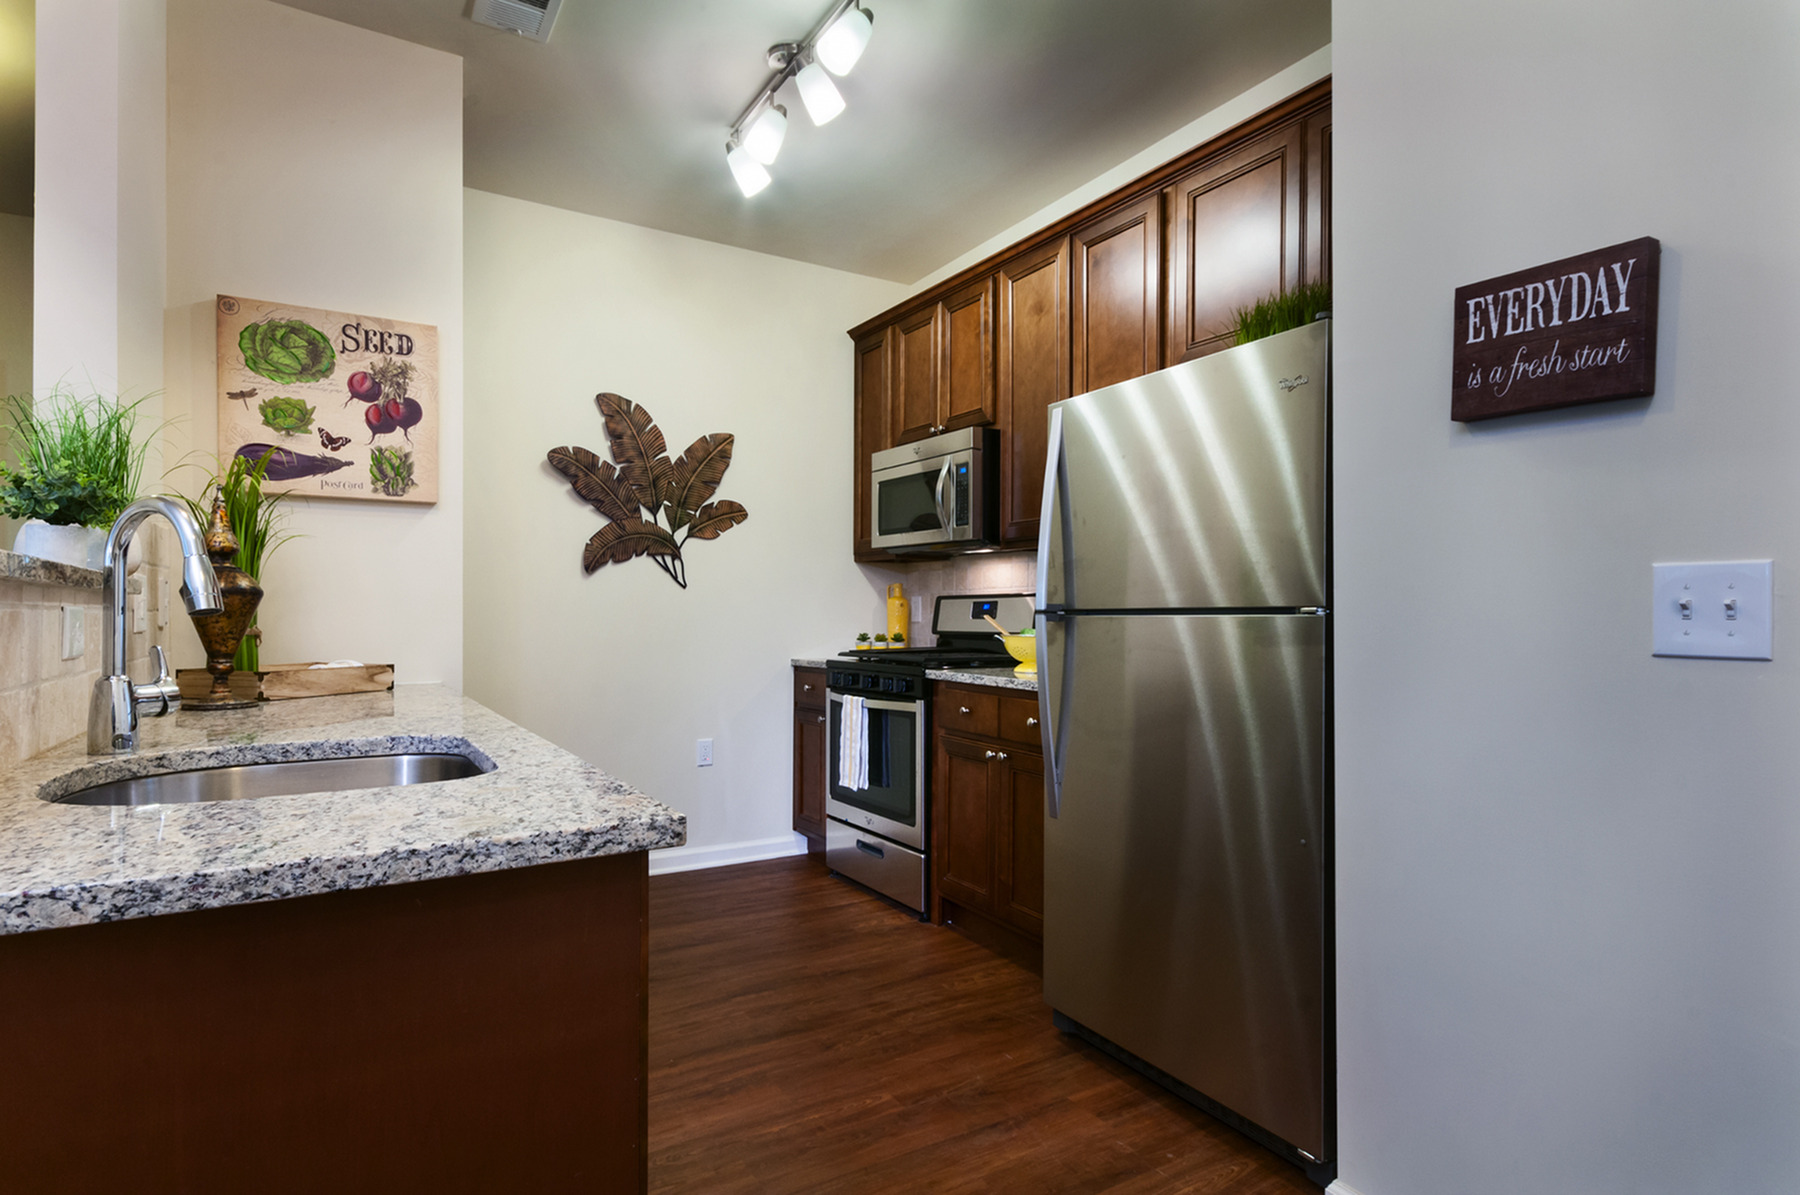 Gourmet Kitchens with Stainless, Granite, & Walnut Finishes